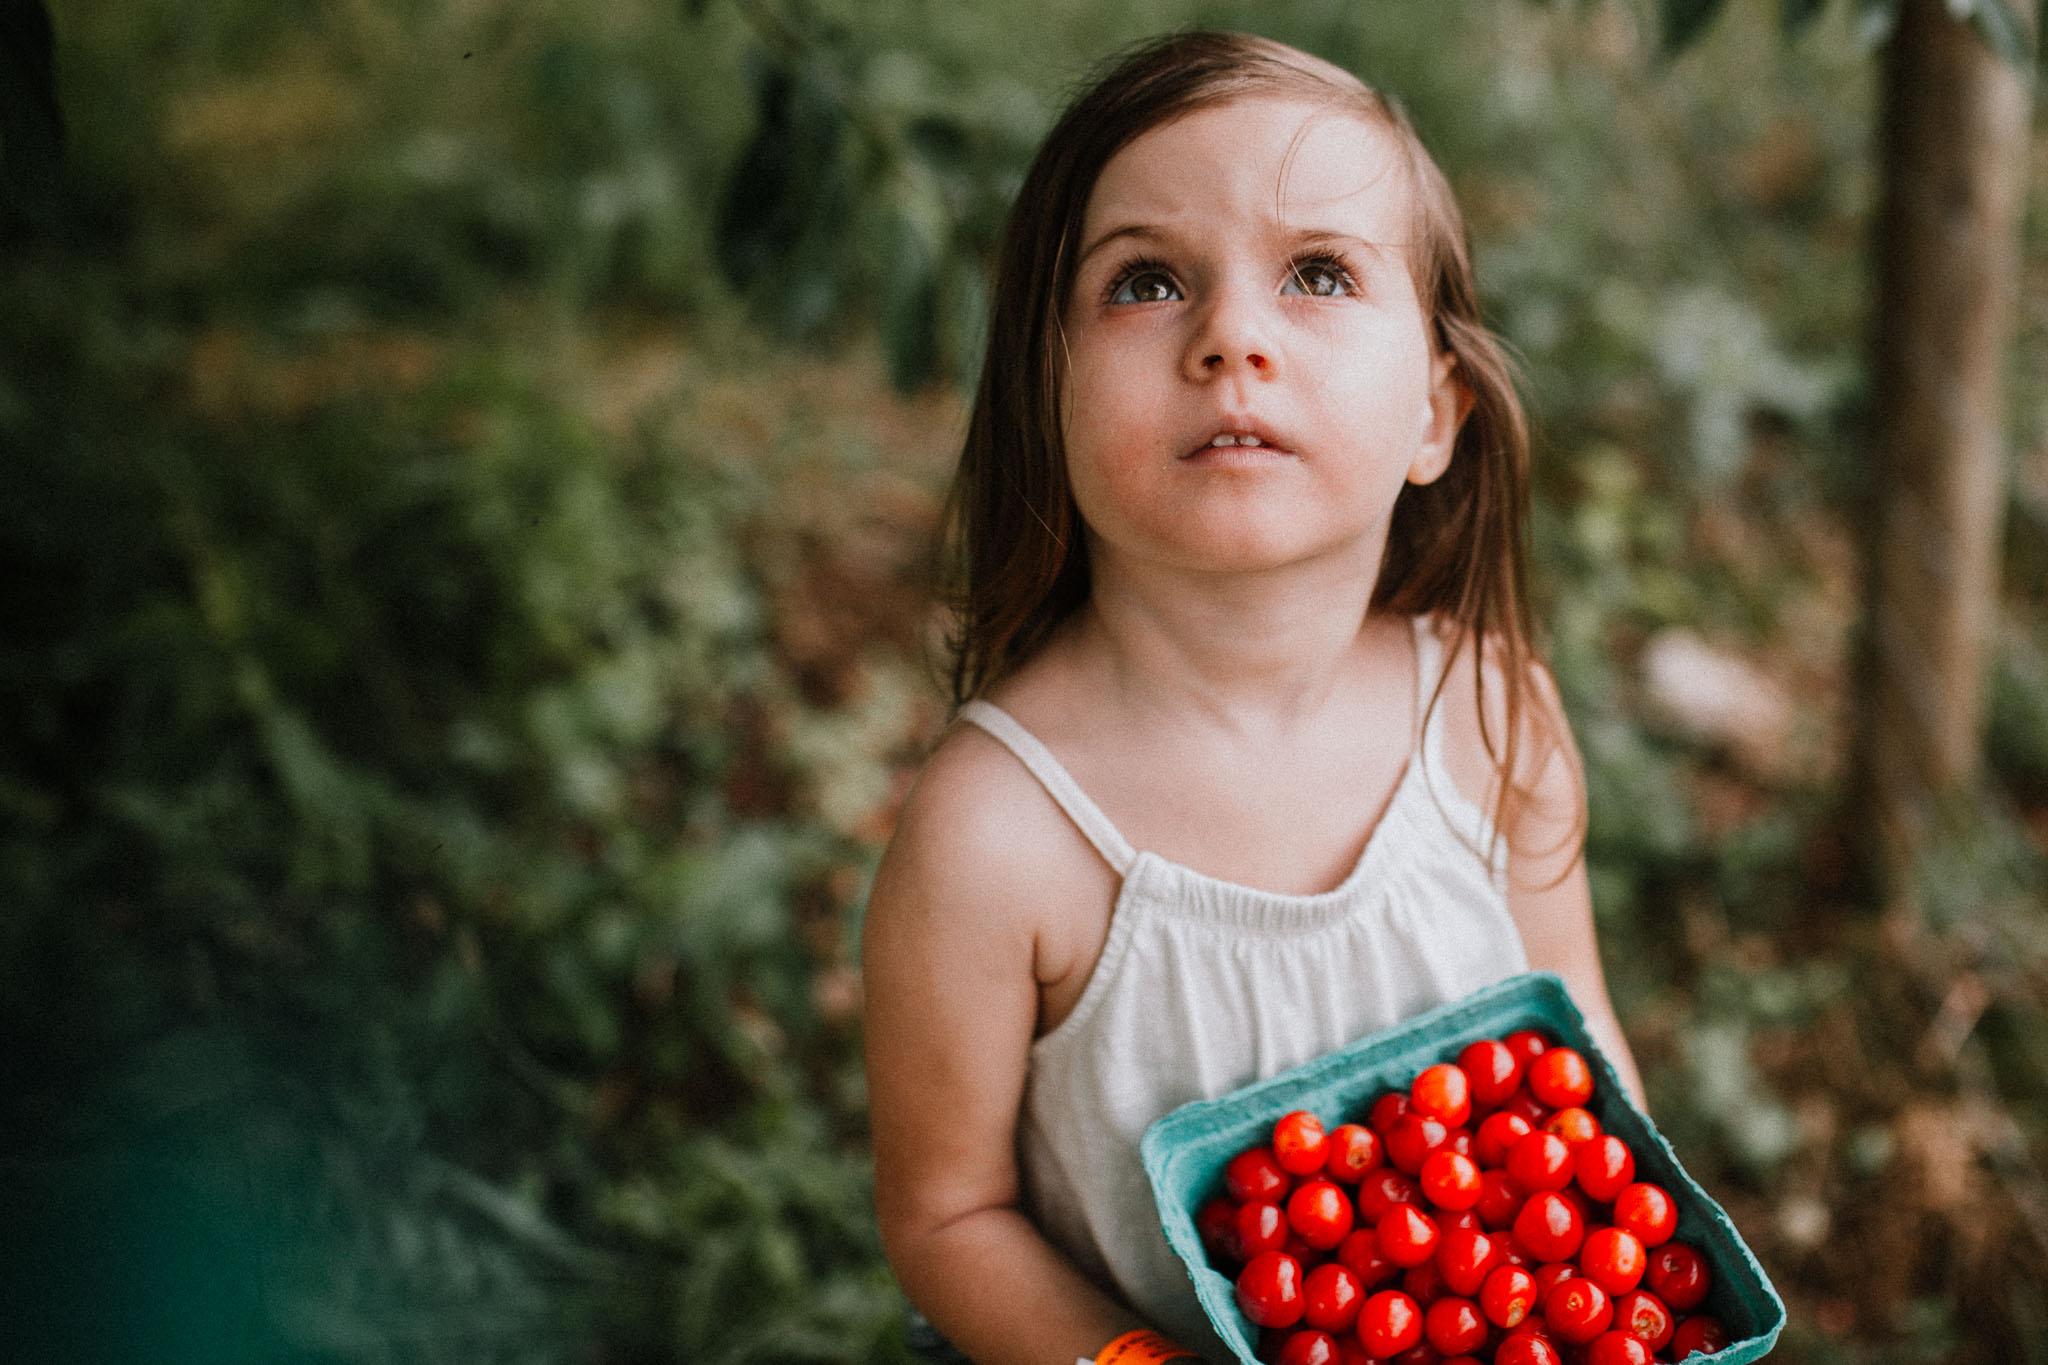 Girl holding a basket of cherries looks above her searching for more to pick at Great Country Farms in Bluemont, Virginia